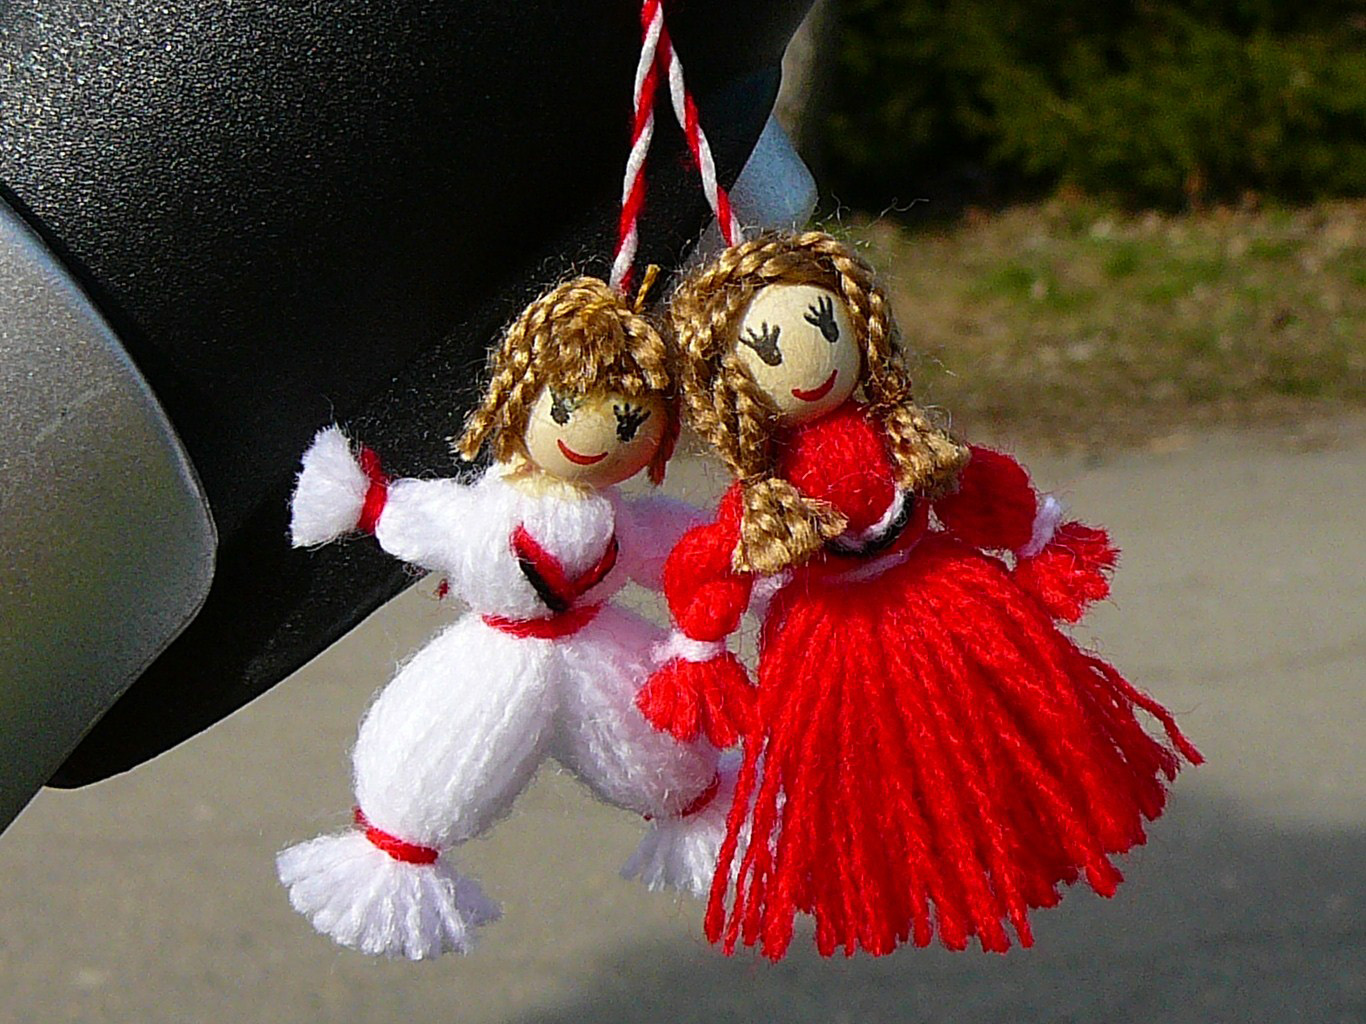 A martenitsa in the form of Pizho and Penda